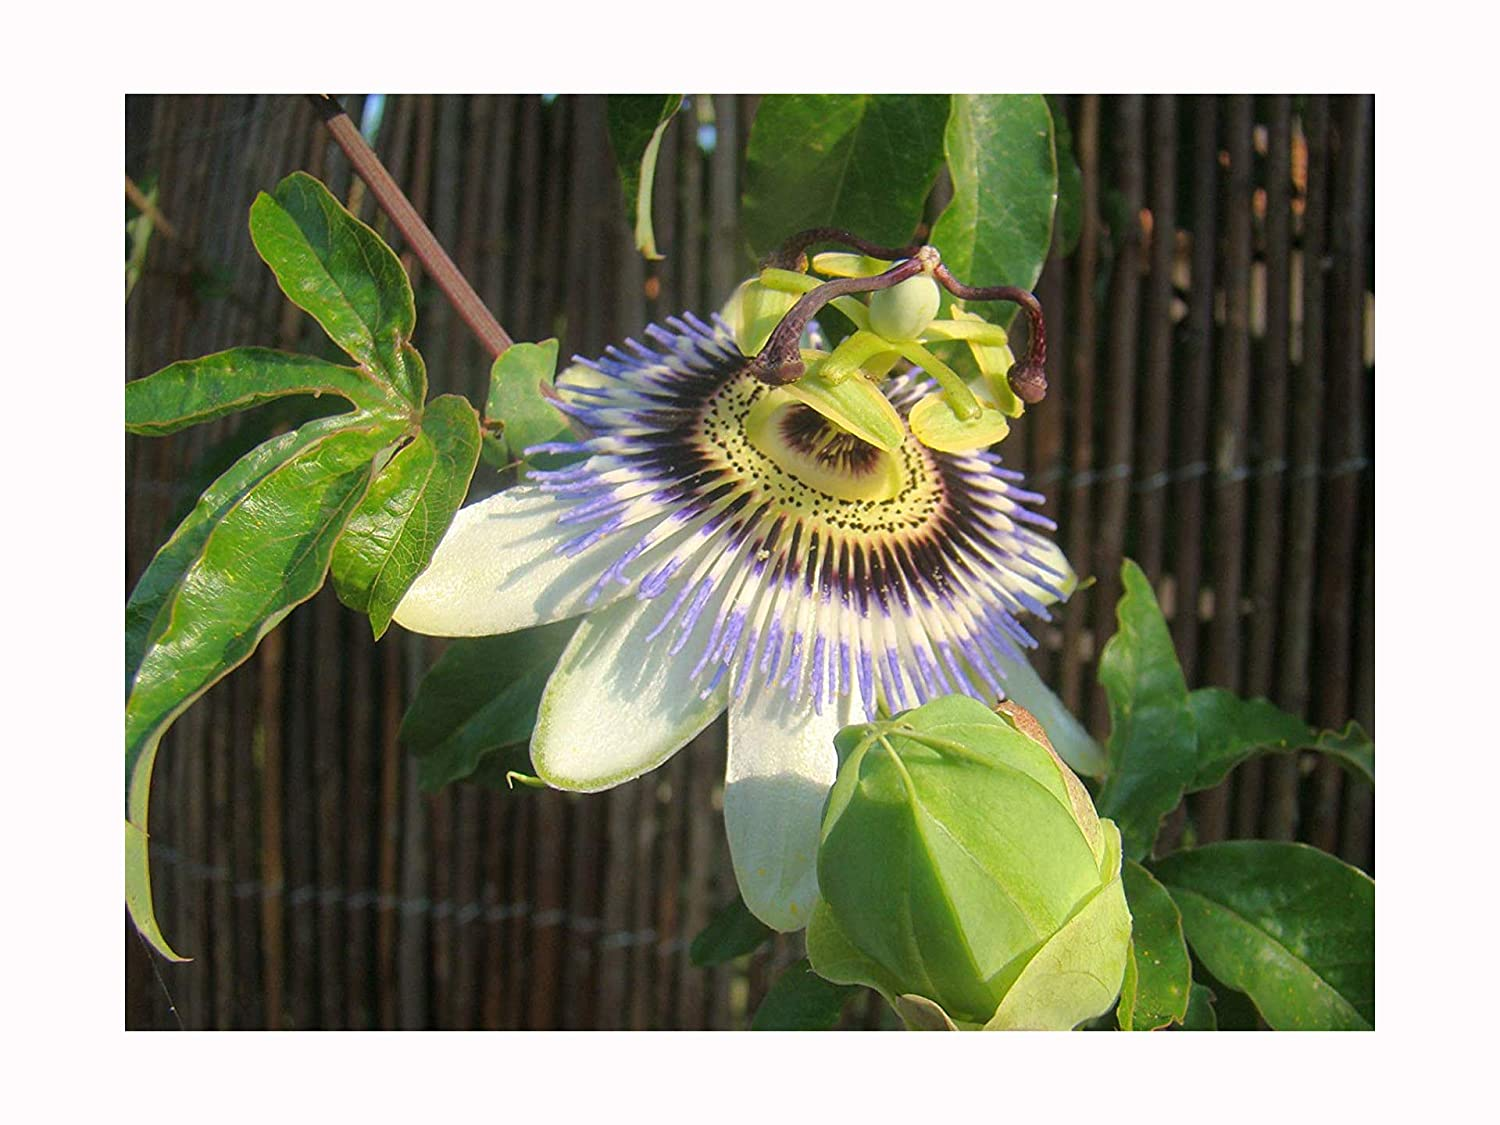 BLUE PASSONFLOWER Passiflora coerulea - 20cm tall plant - the hardiest passion flower for the UK - fast growing climber with large, blue flowers